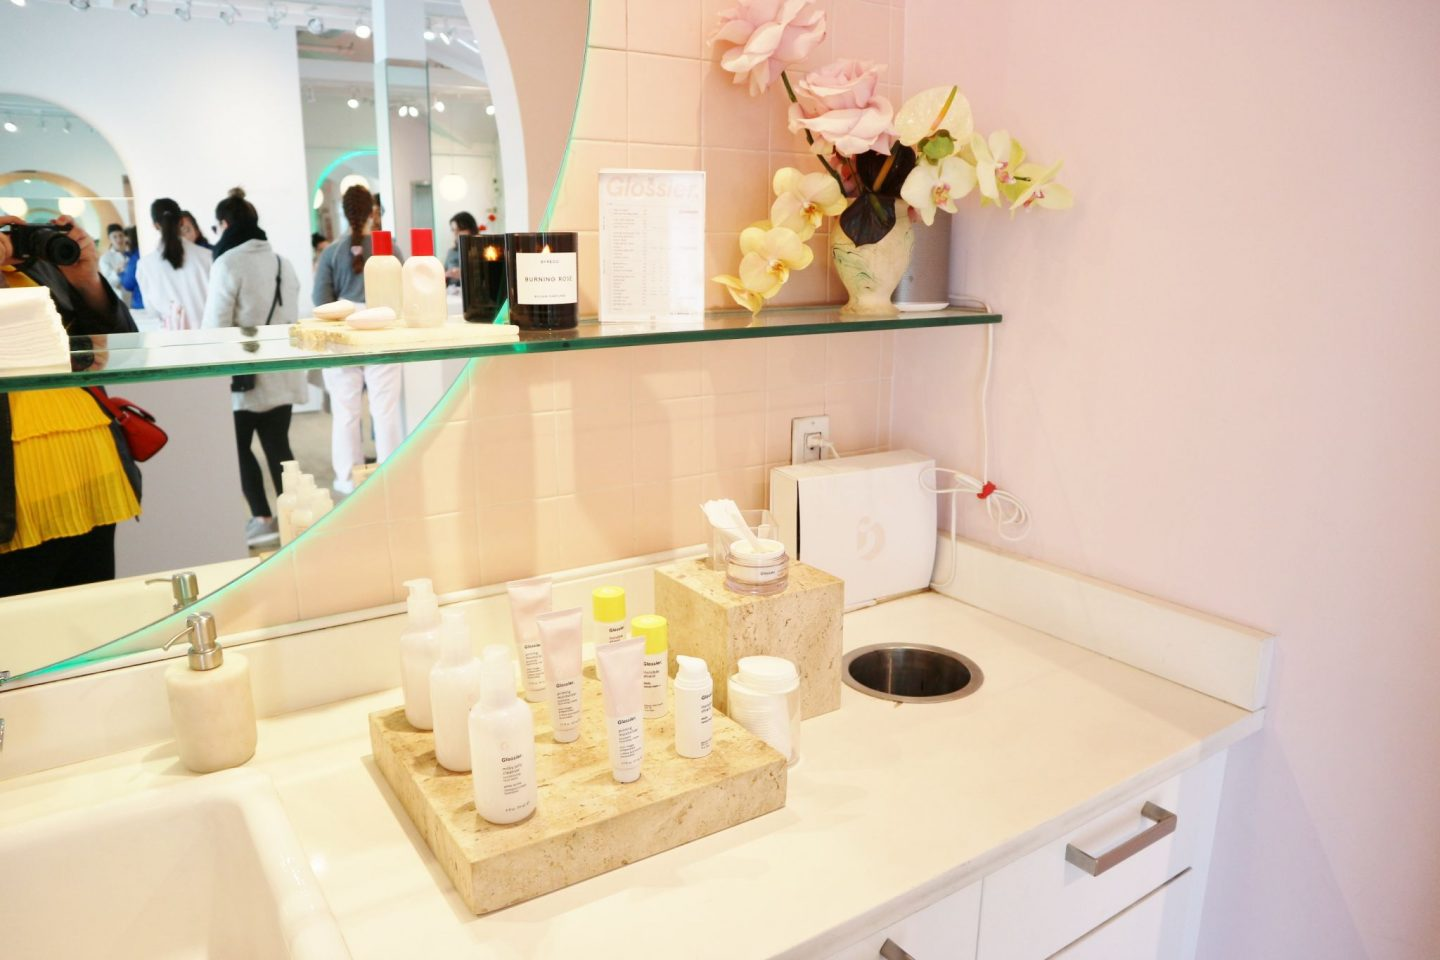 glossier showroom interior